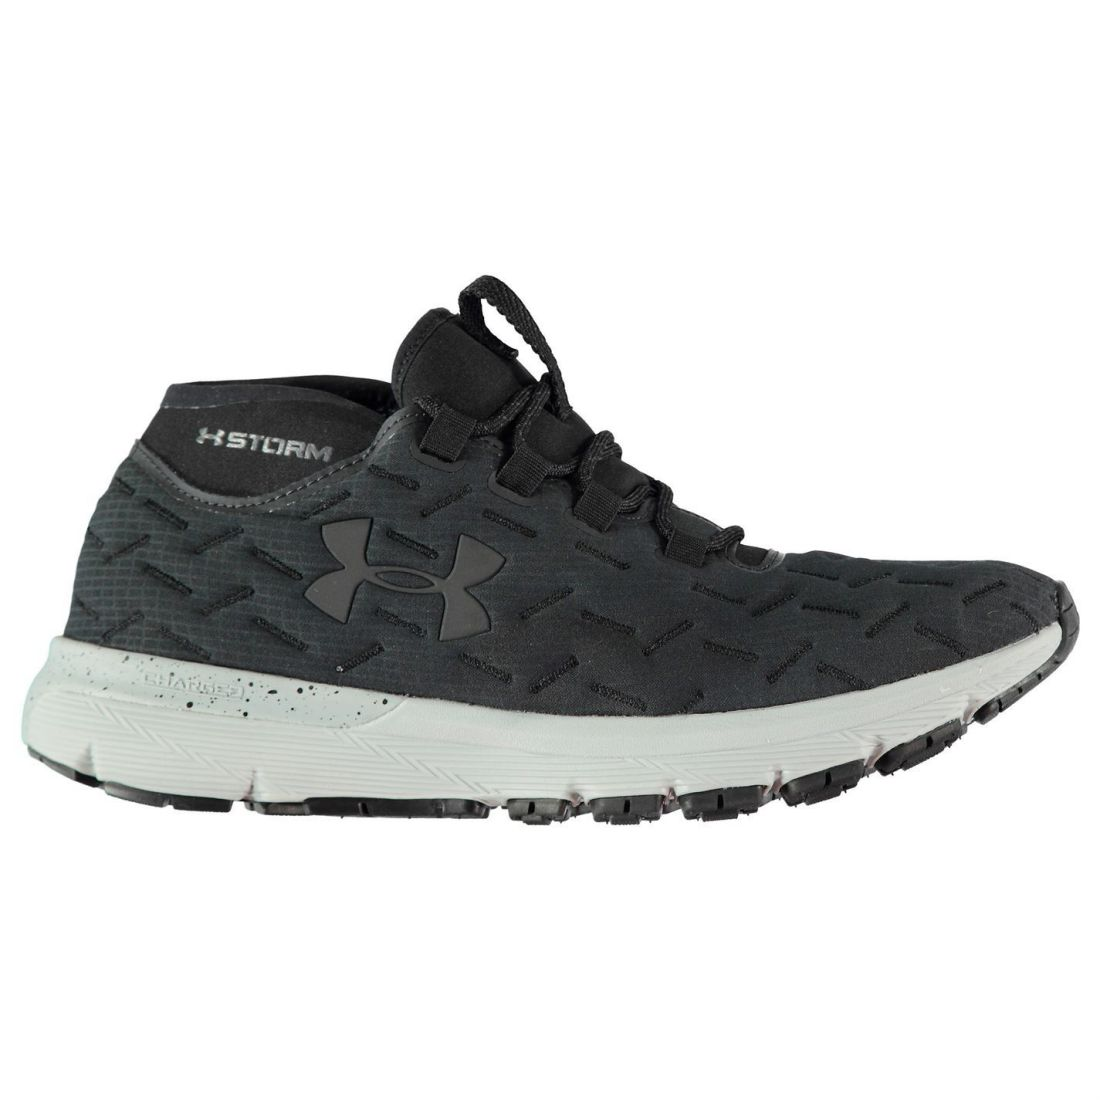 Armour Cordones Zapatos Hombres negro Charged Reactor Corredores gris Run Under Gents para correr H6OqHd